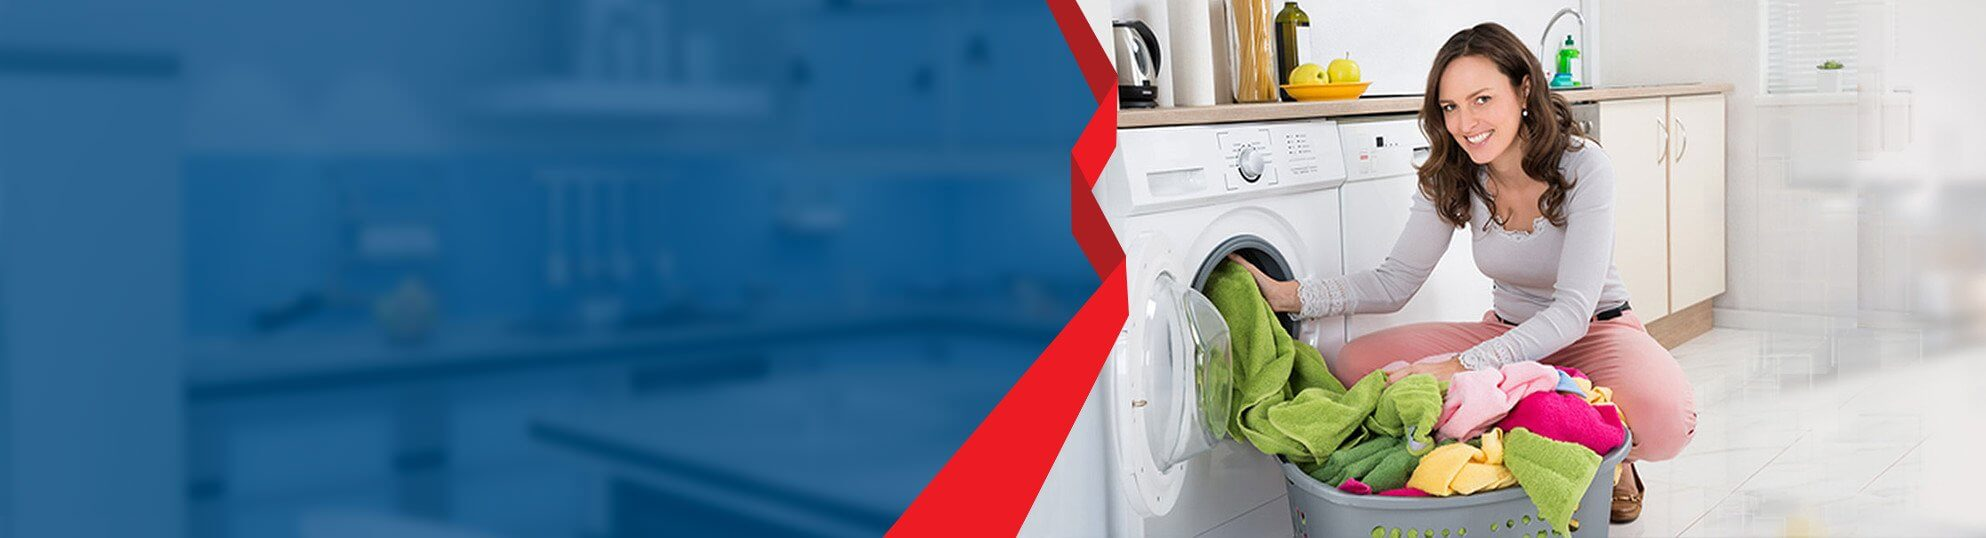 Get quality washing machine repairs service in North London by Mix Repairs!